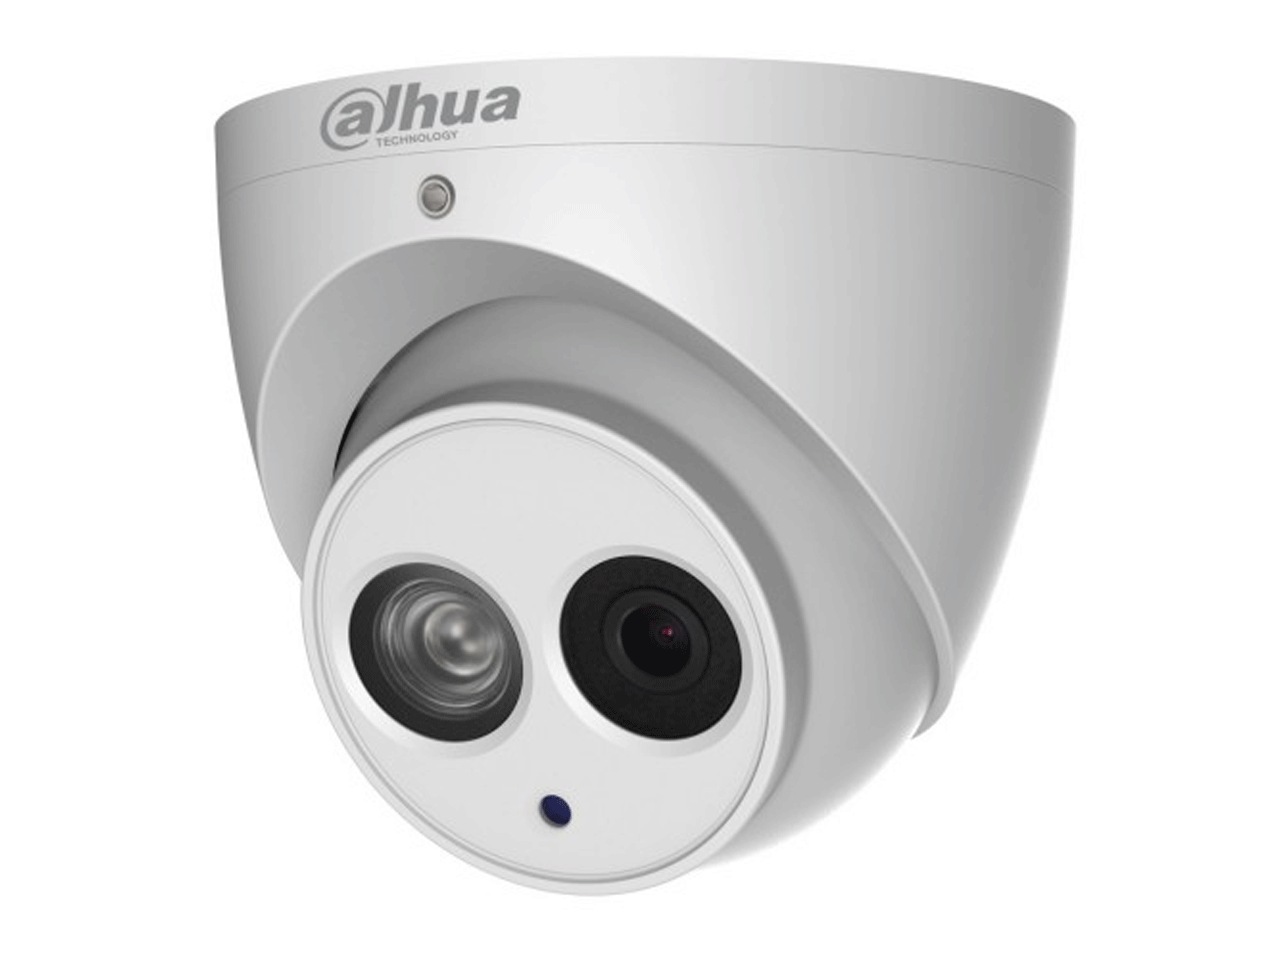 DAHUA IPC-HDBW4830EMP-AS-0400B 8 MEGAPİKSEL ULTRA HD WATERPROOF IR DOME IP KAMERA - SESLİ